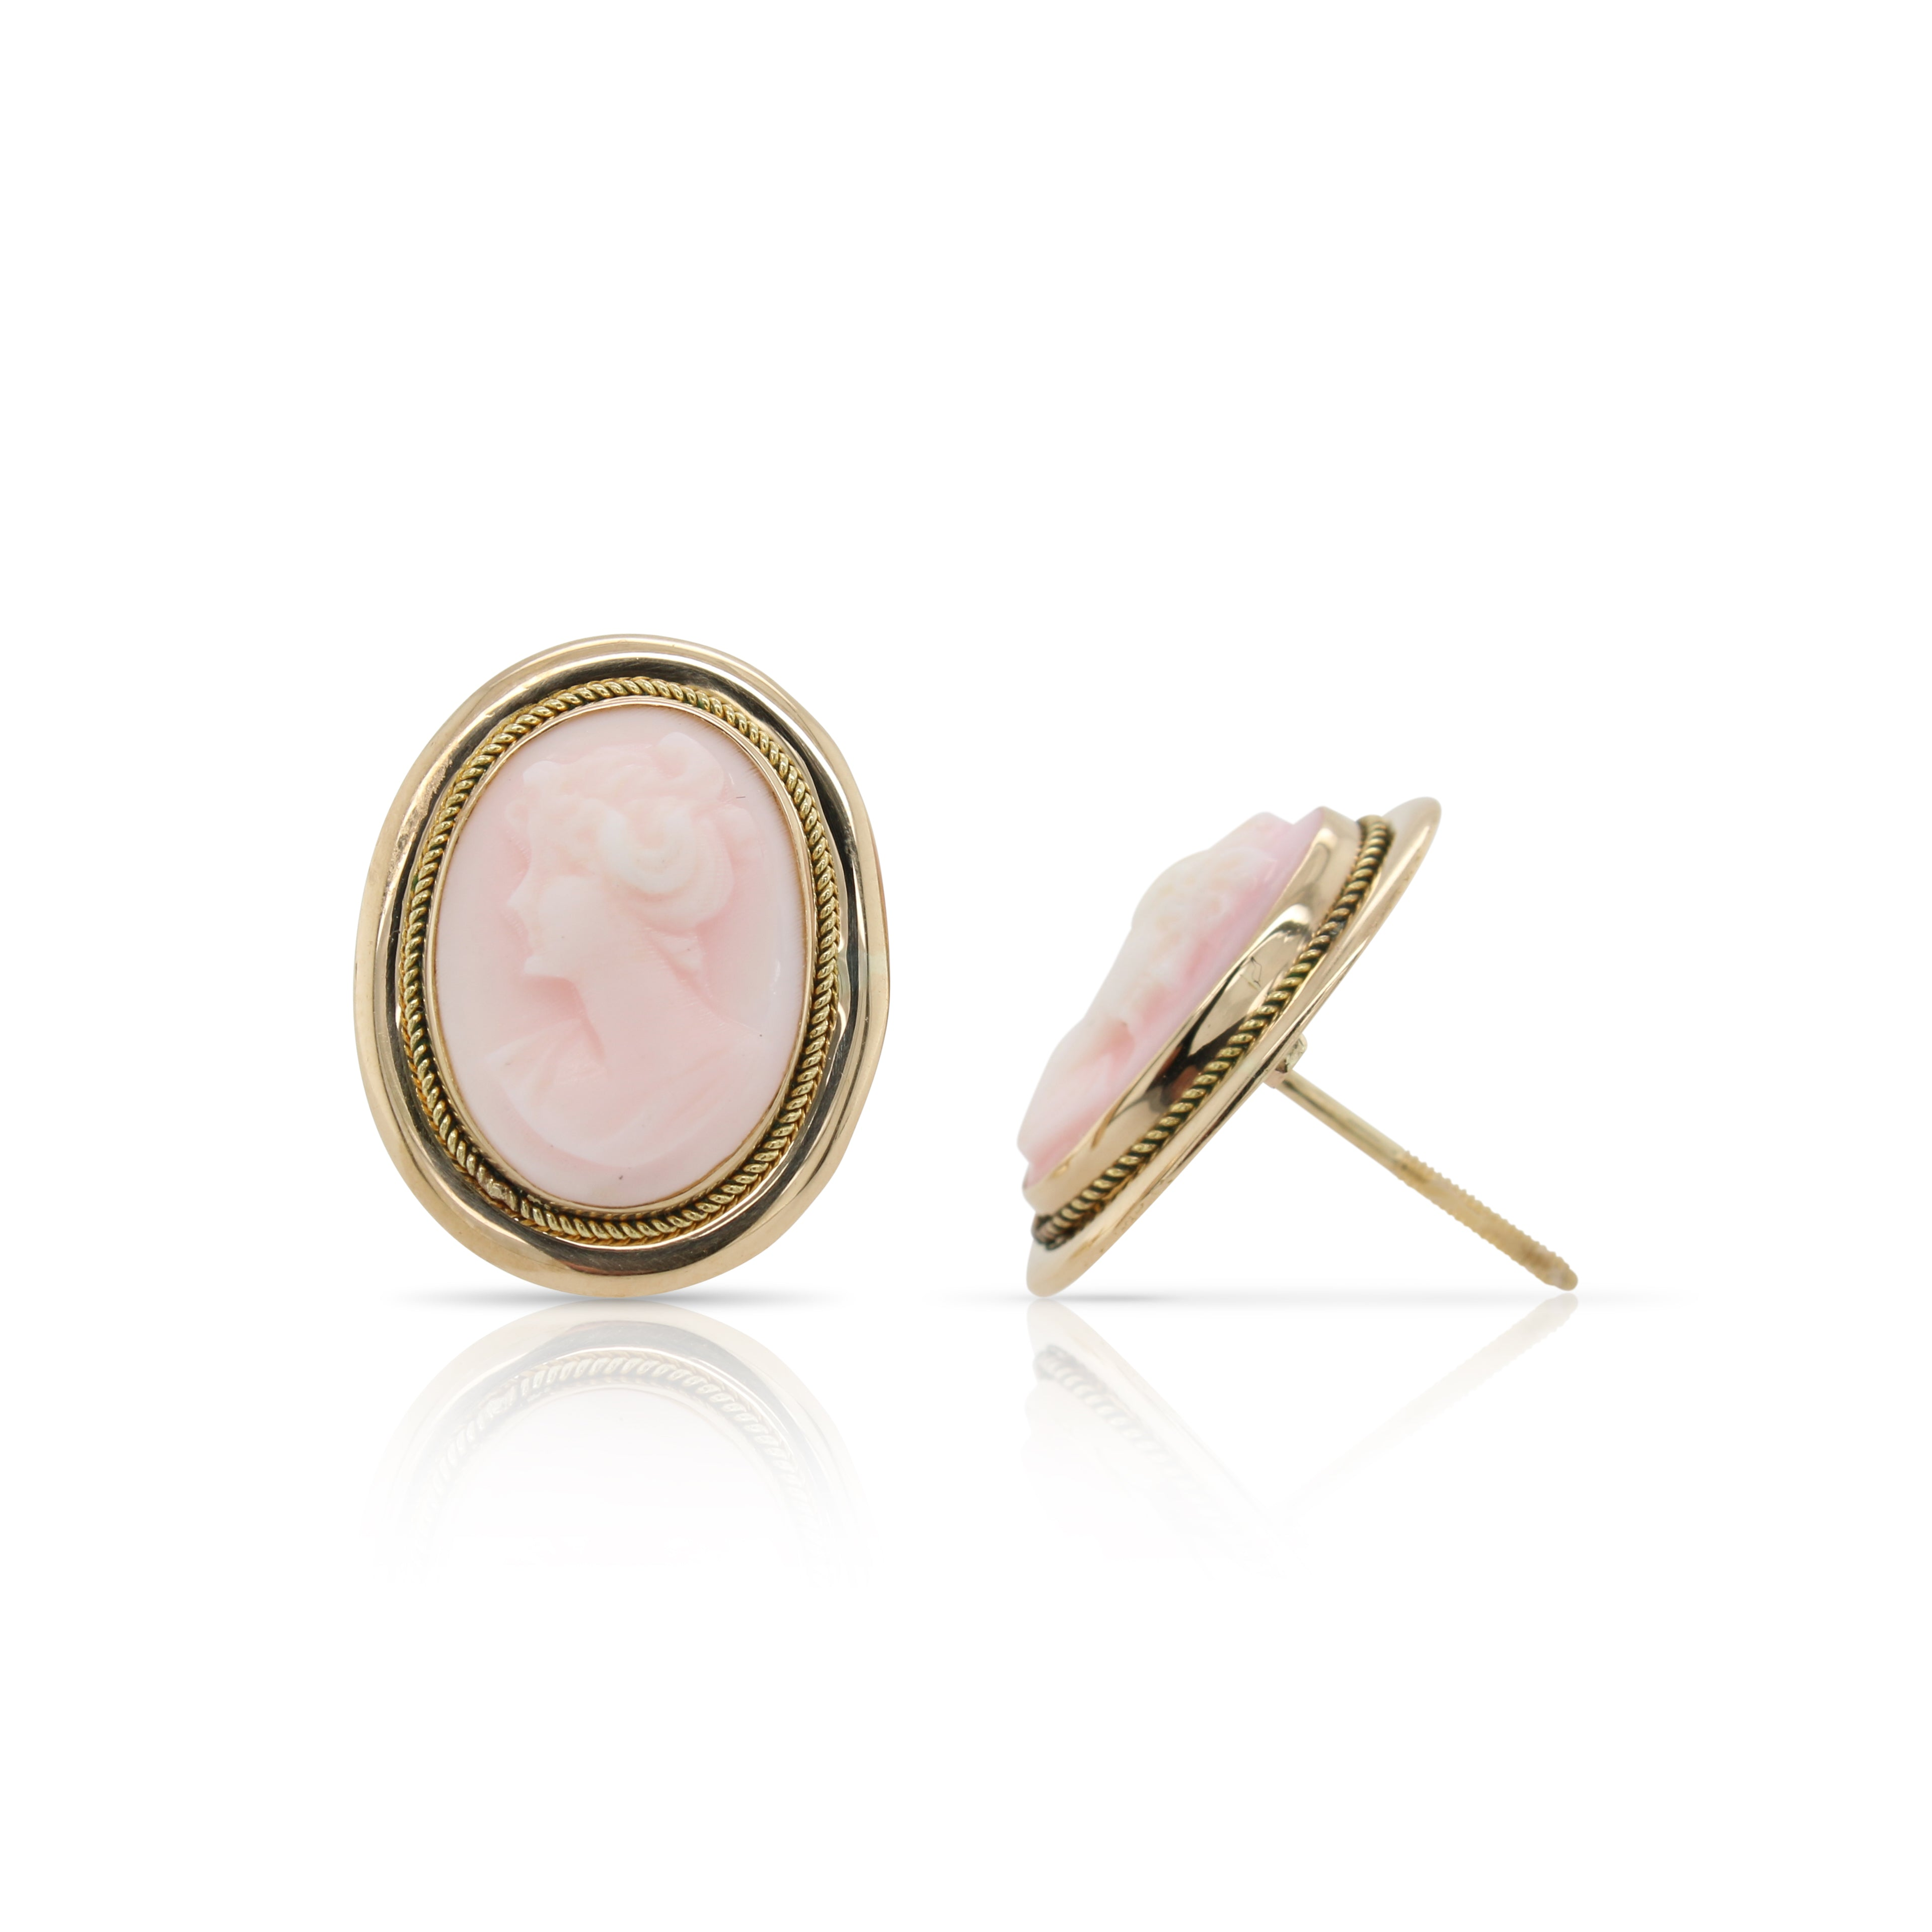 Pink Oval Cameo Earrings